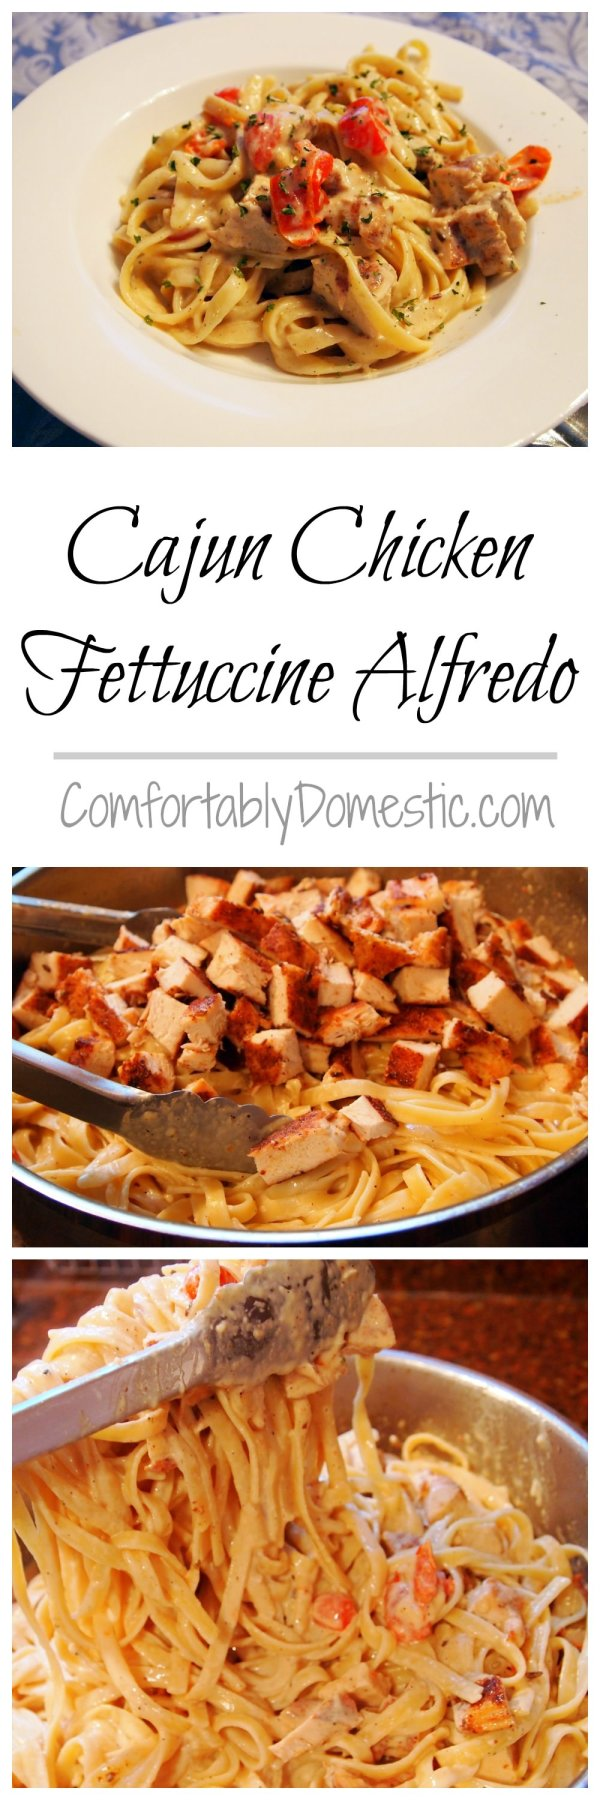 Cajun Chicken Fettucine Alfredo - Get the recipe on ComfortablyDomestic.com